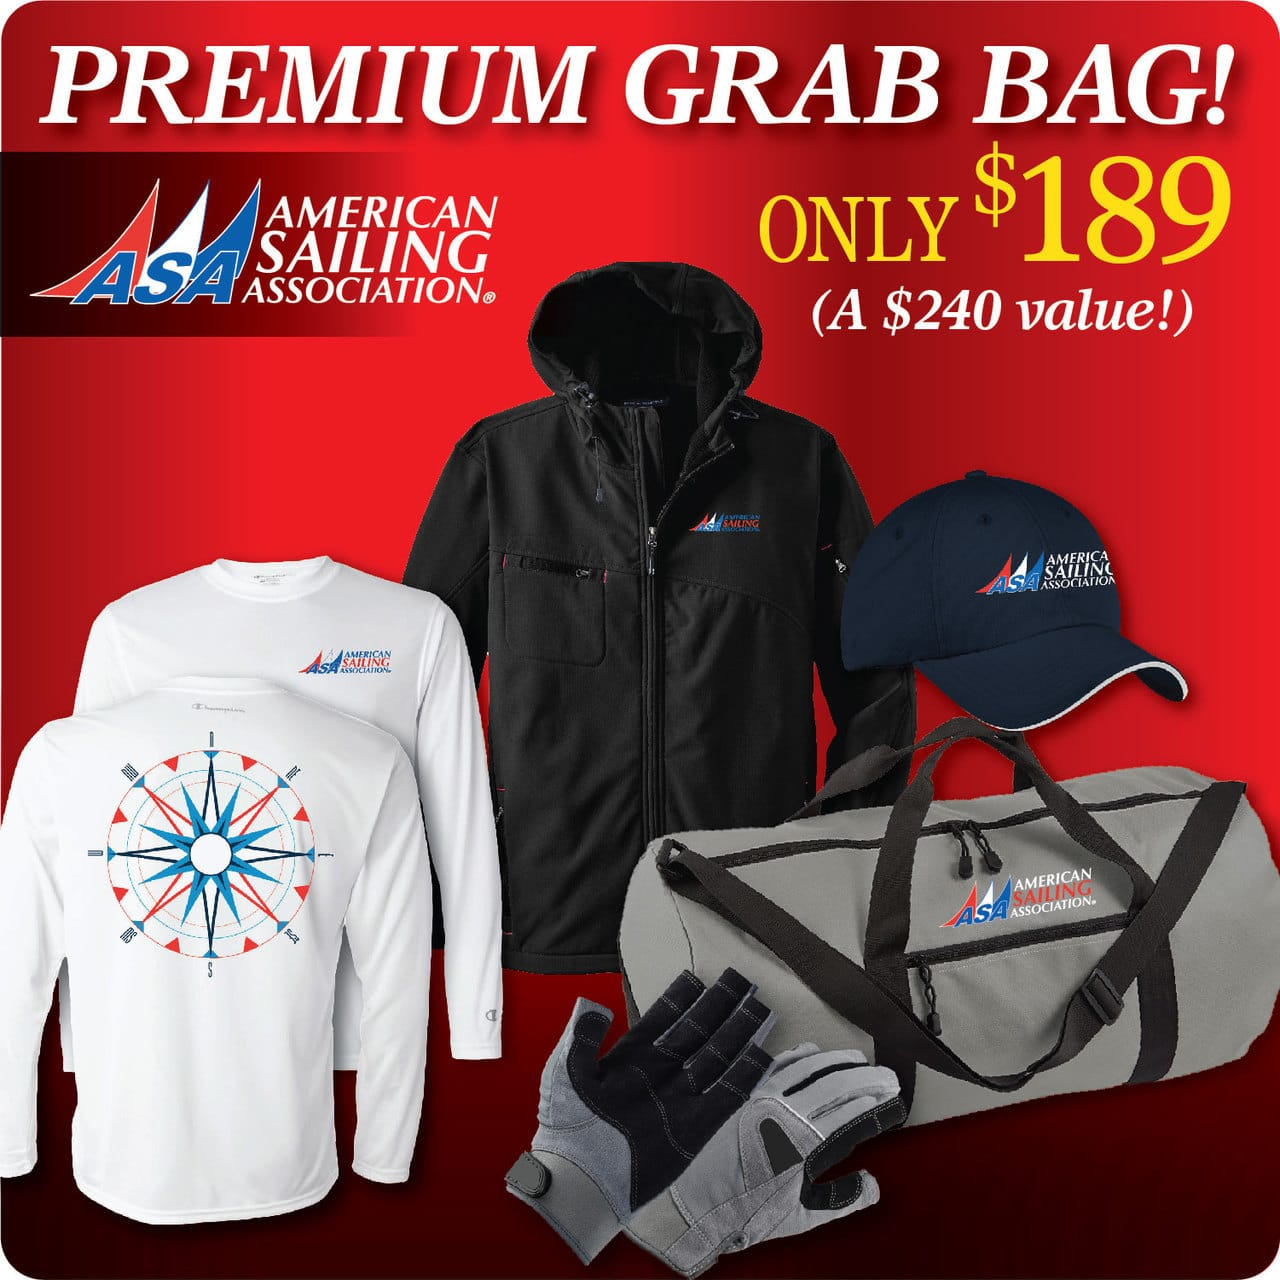 ASA's Sailor Premium Grab Bag